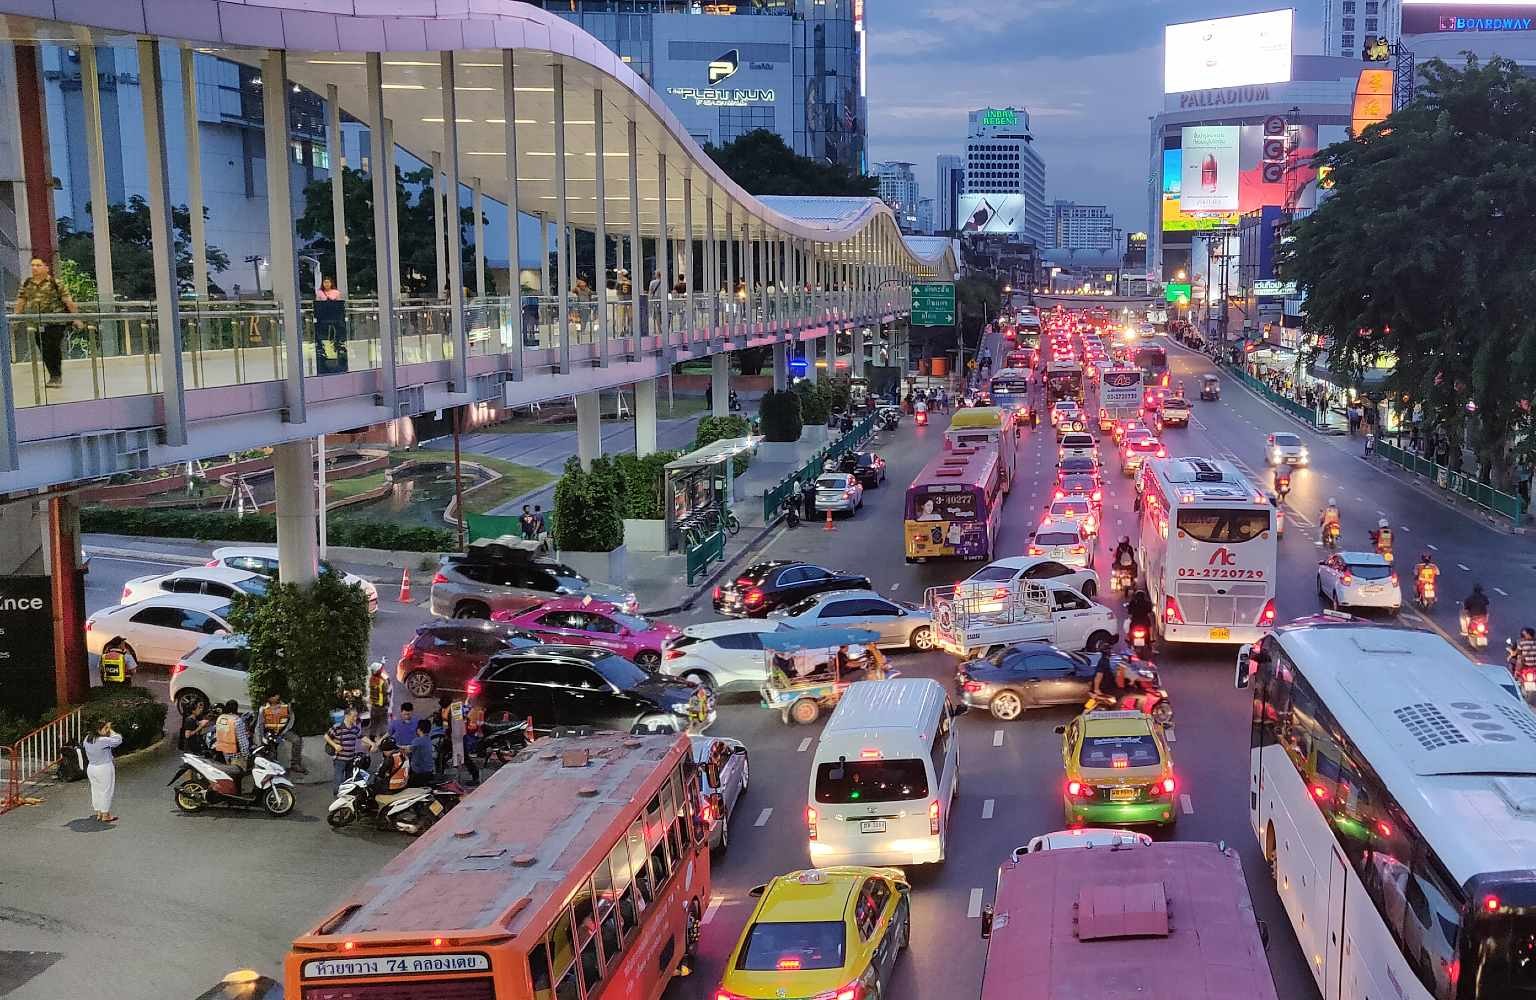 Sky walk above the hustle and bustle of the road in the center of Bangkok